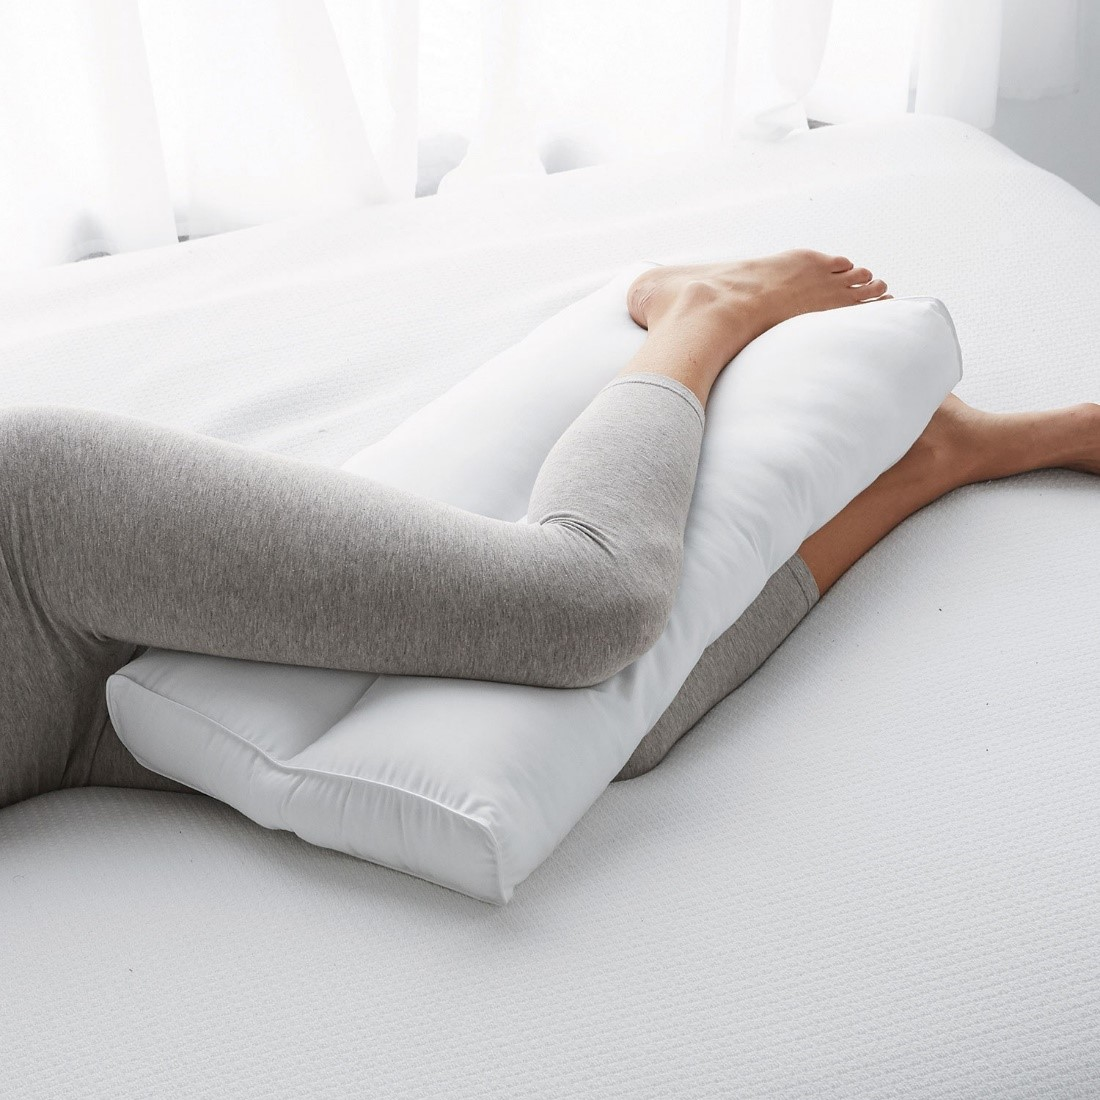 what is the best sleep position?